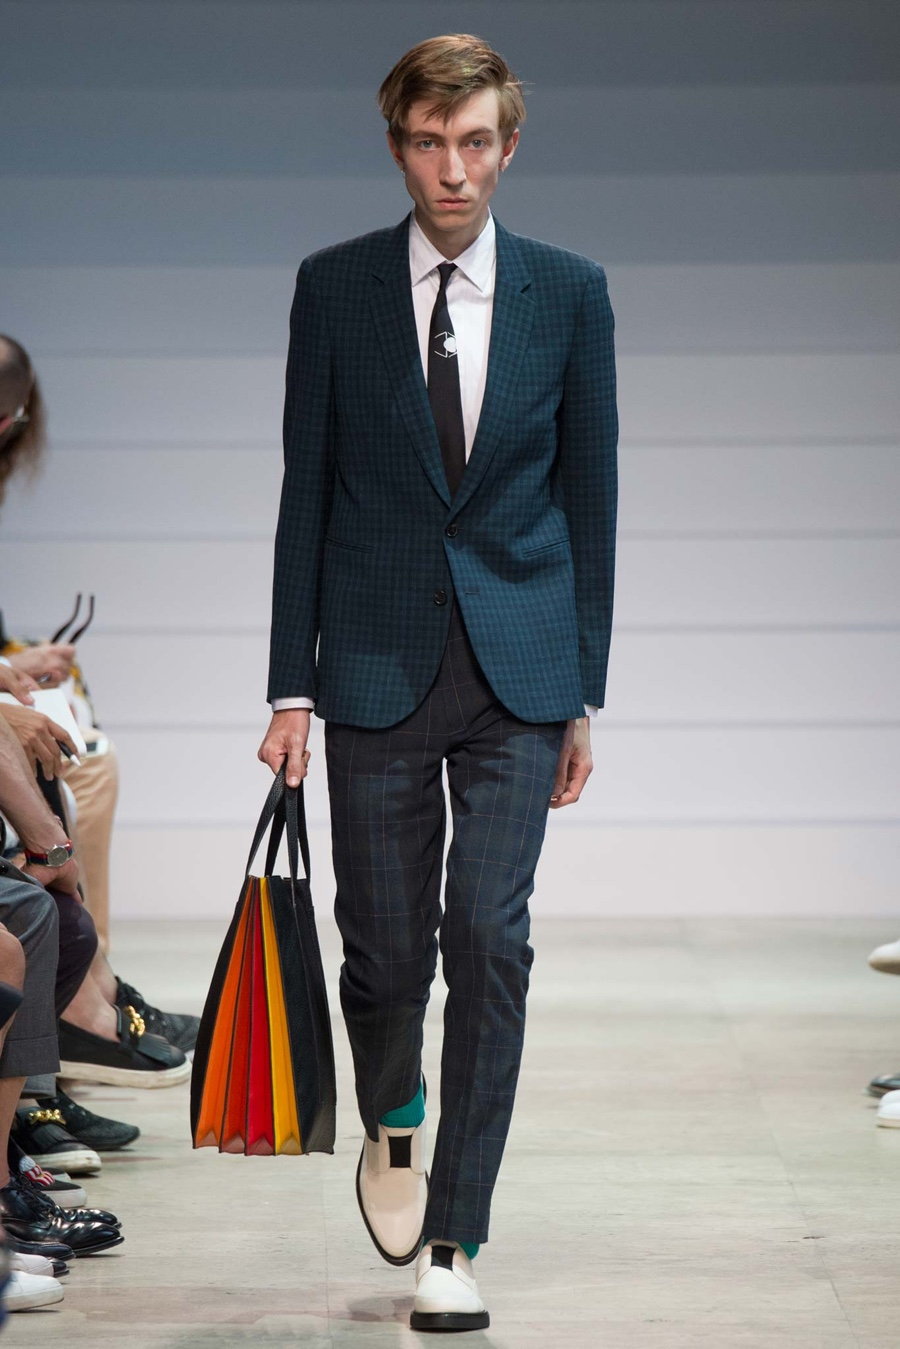 Paul smith spring / summer